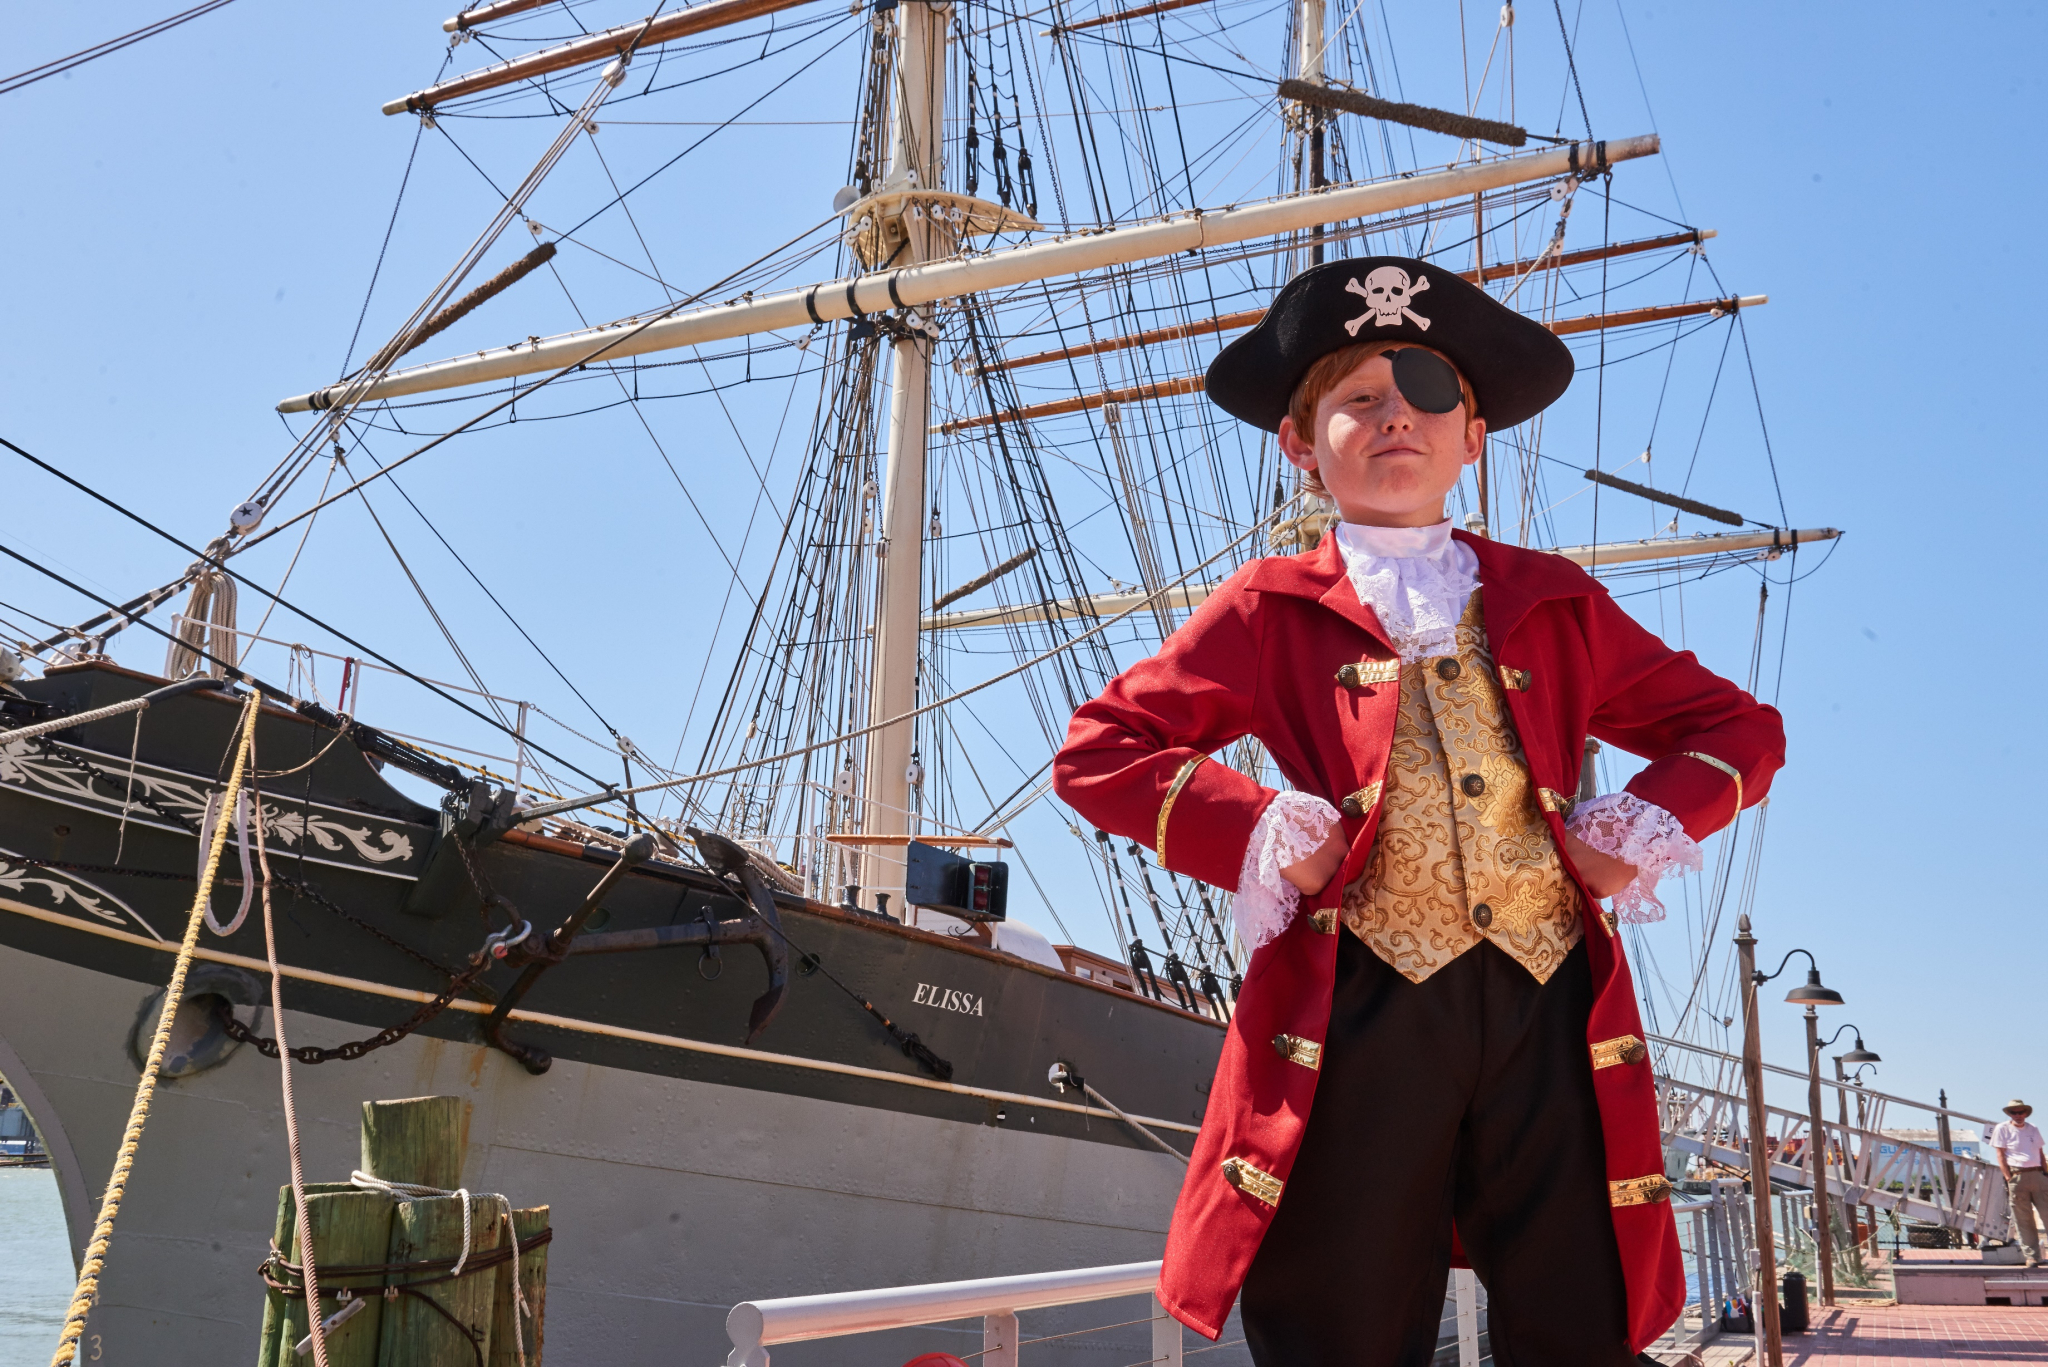 The 1877 Tall Ship ELISSA is celebrating its 143rd birthday, and you're invited to attend